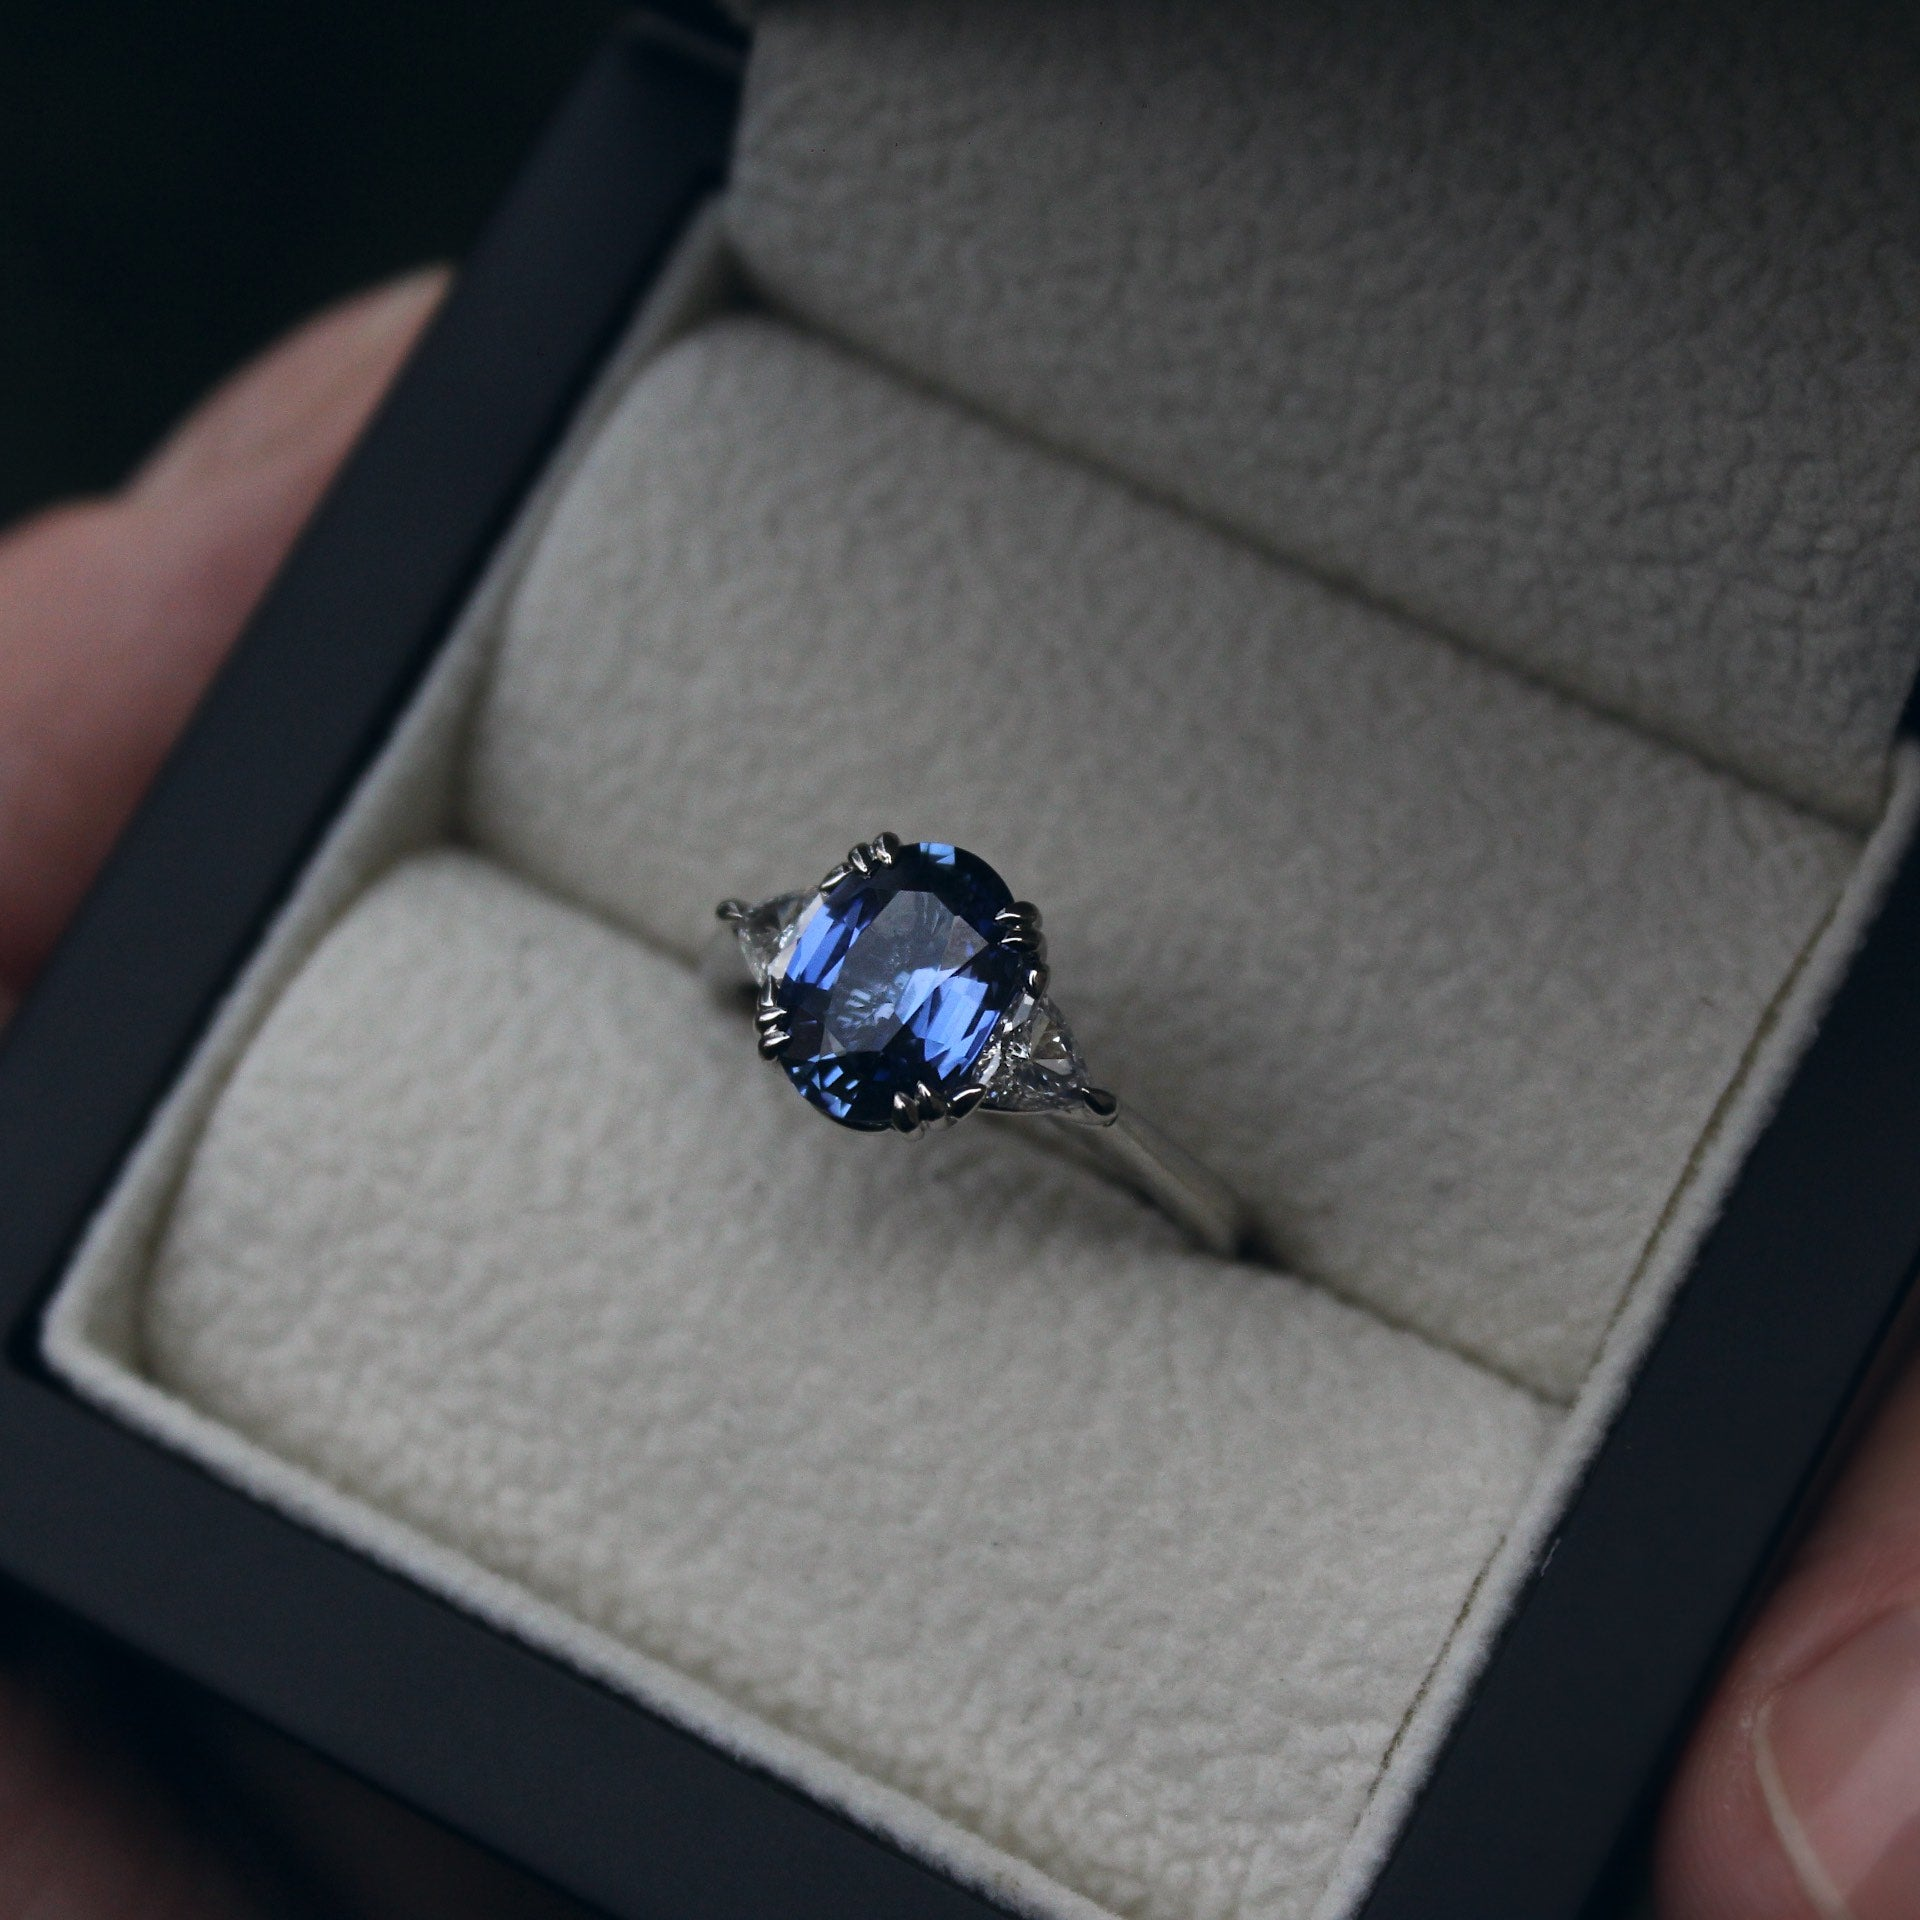 Moira Patience Fine Jewellery Bespoke Commission Ceylon Sapphire and Diamond Engagement Ring in Edinburgh Scotland